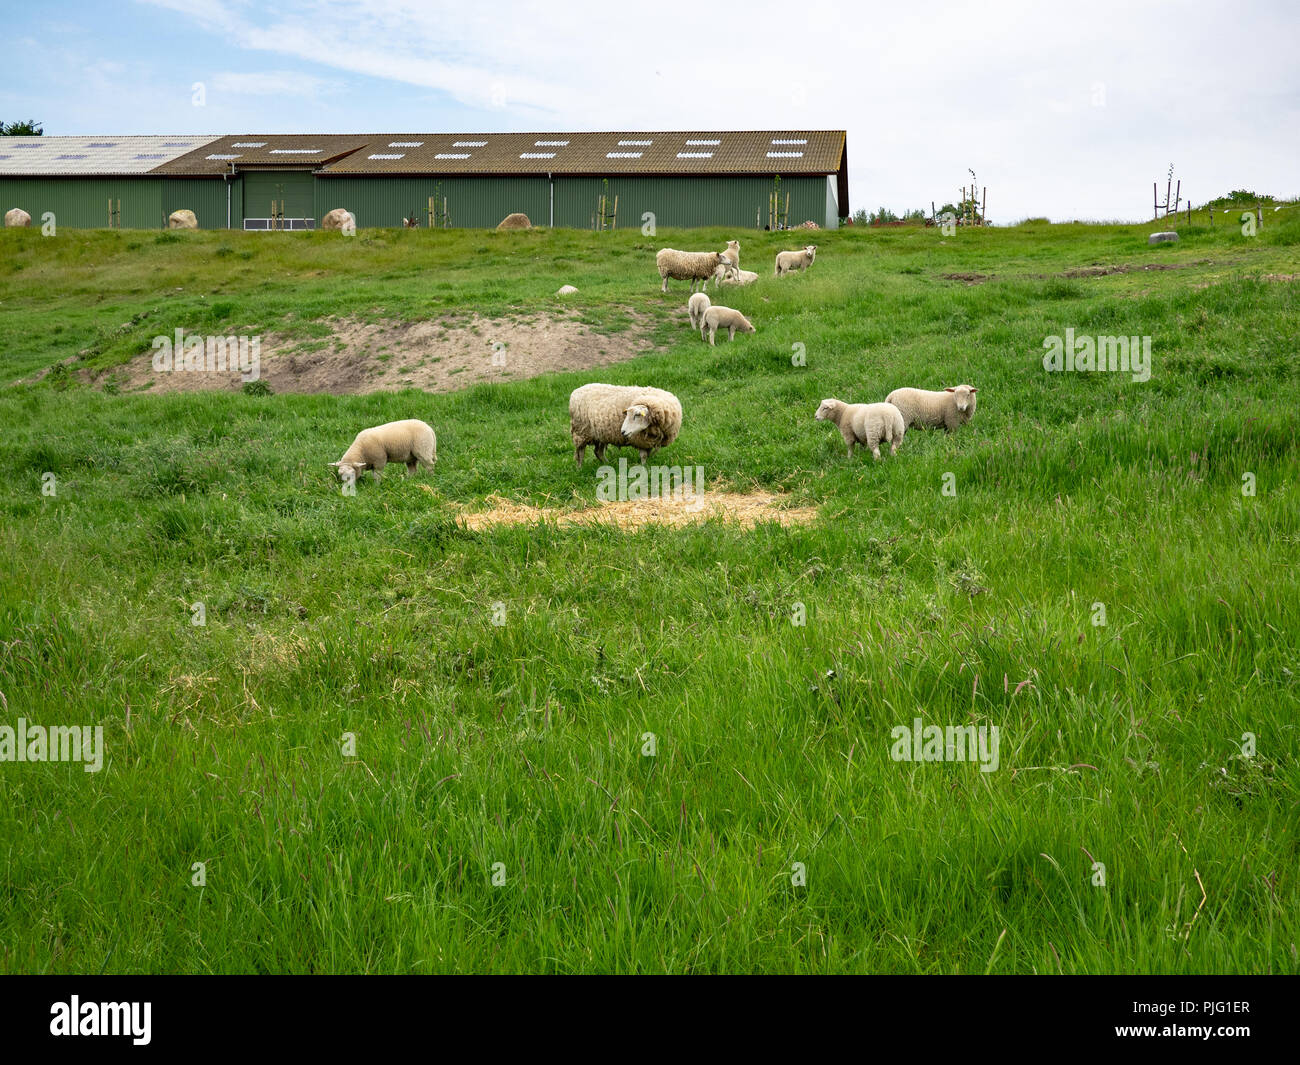 Sheep grazing at a farm in Søby, Ærø Island, Denmark. - Stock Image